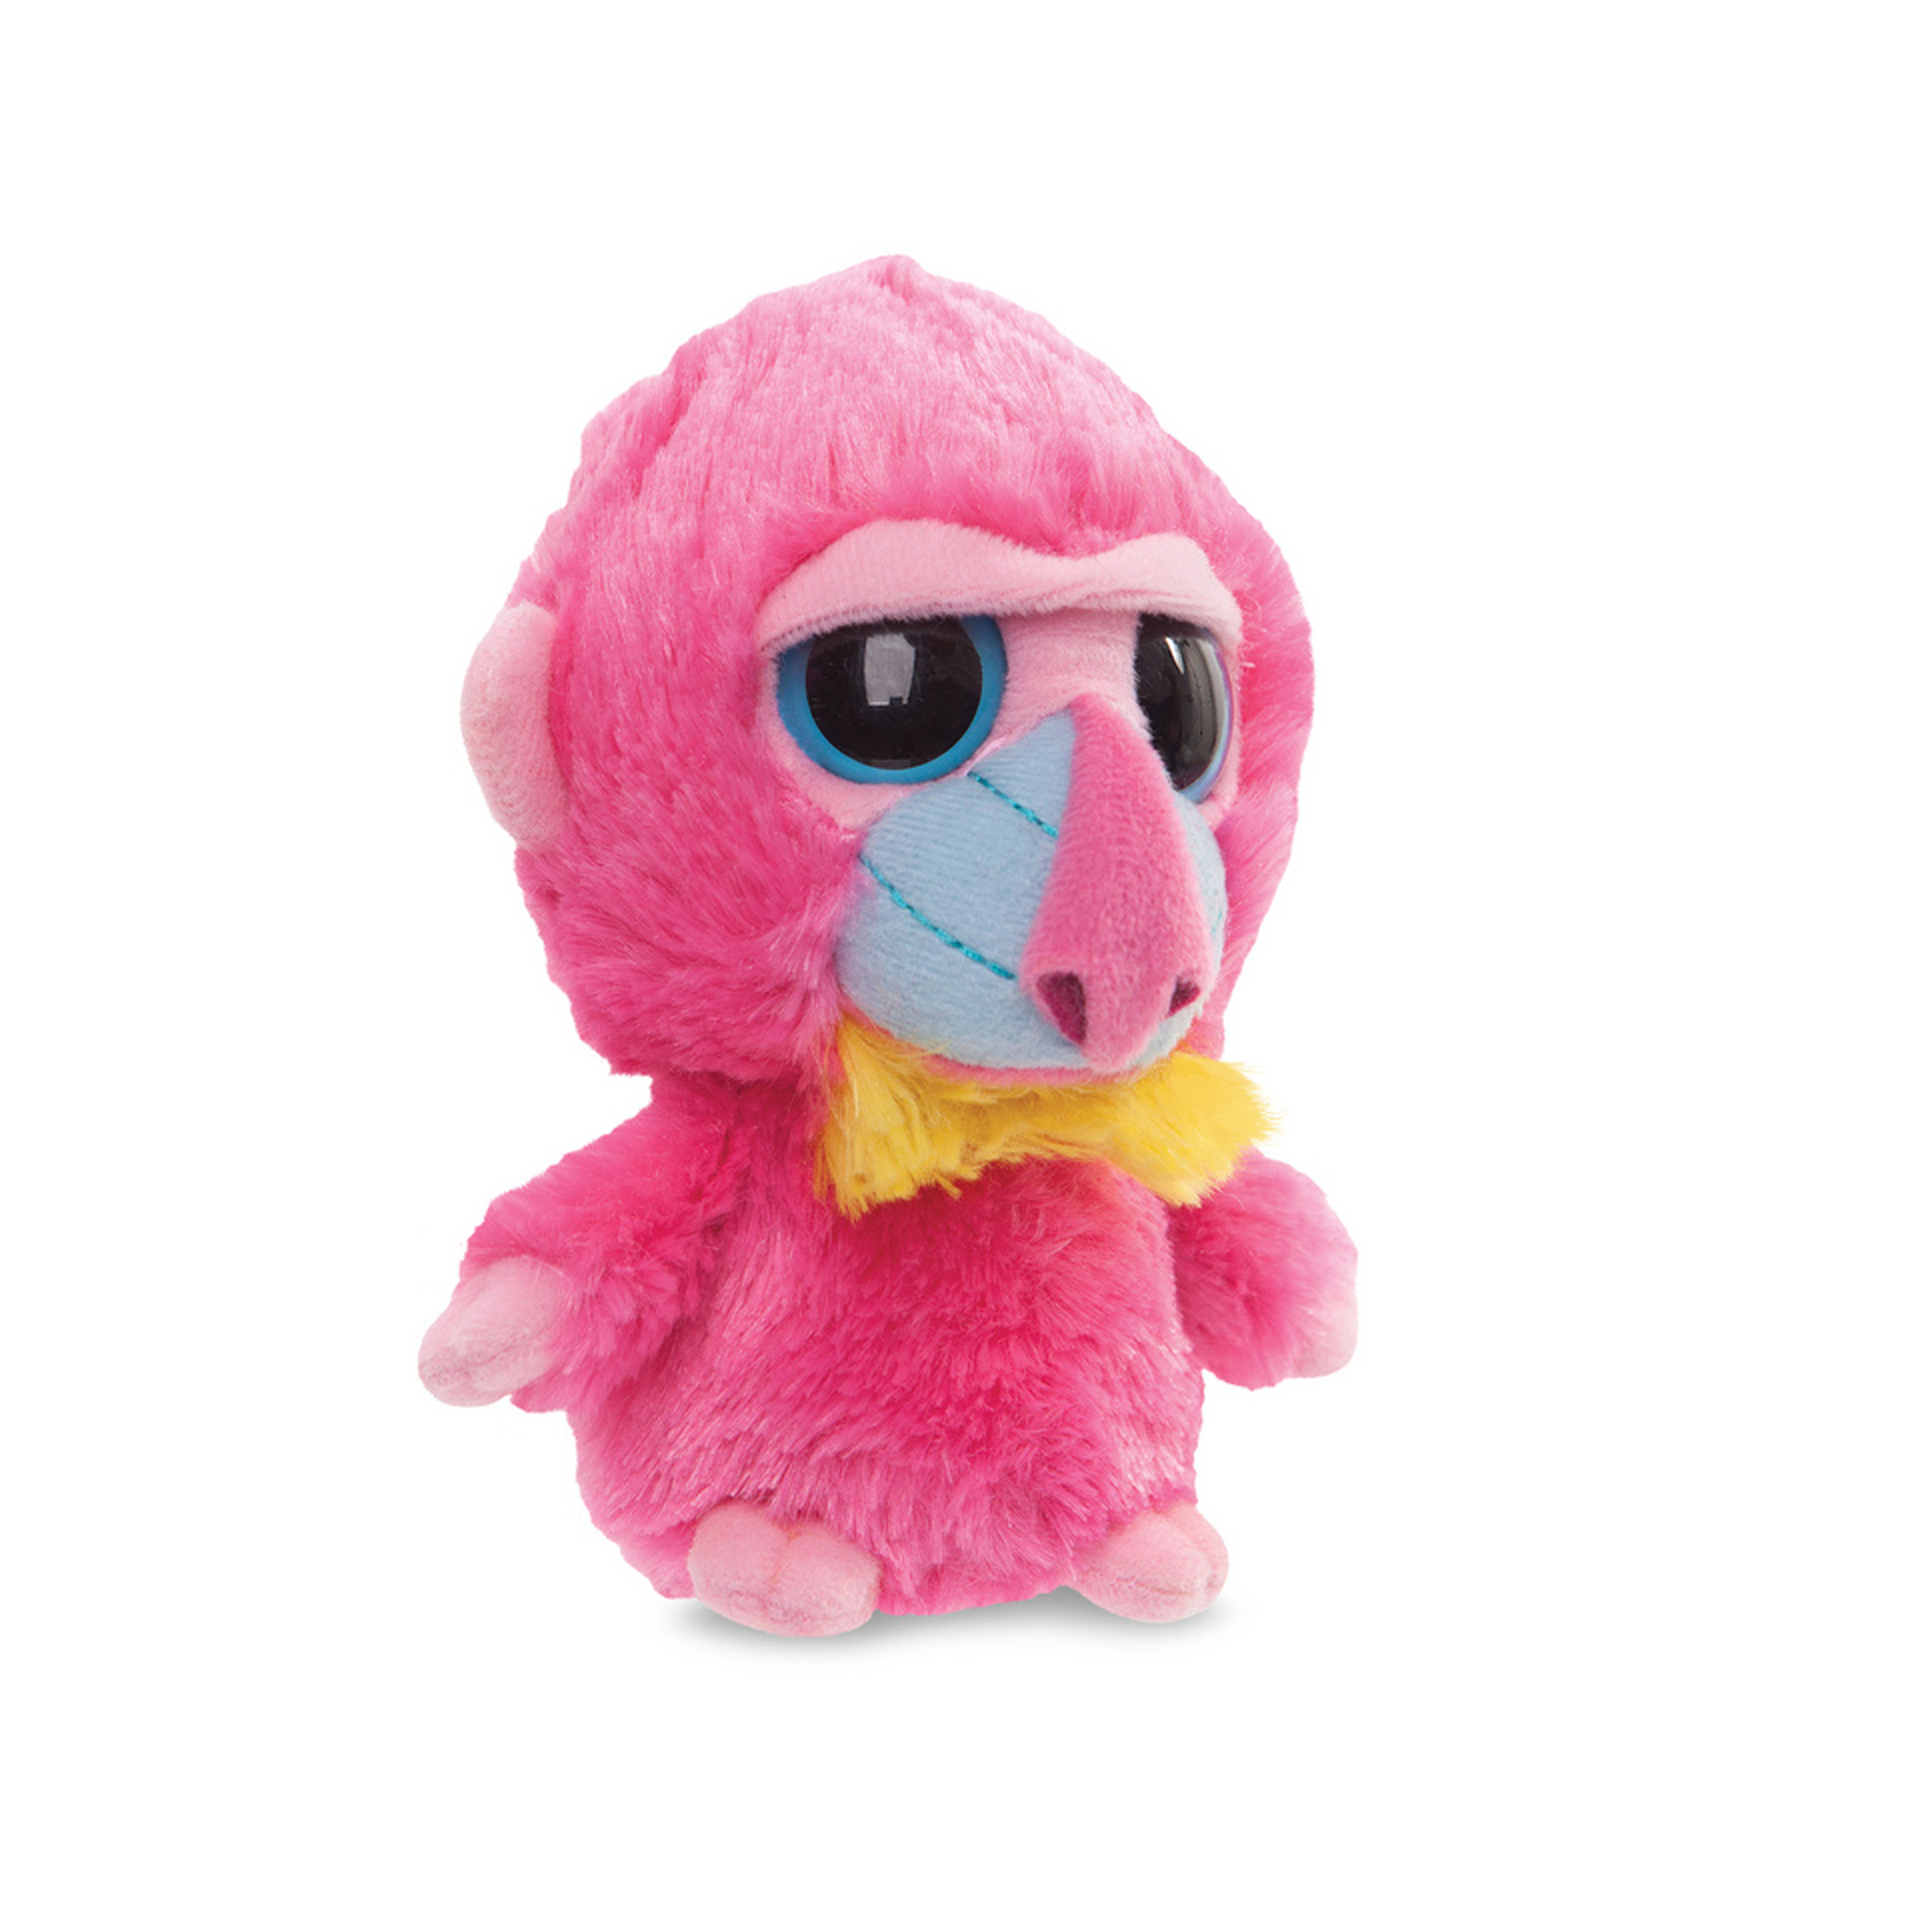 Yoohoo & Friends 5 Inch Vivid Mandrill Monkey